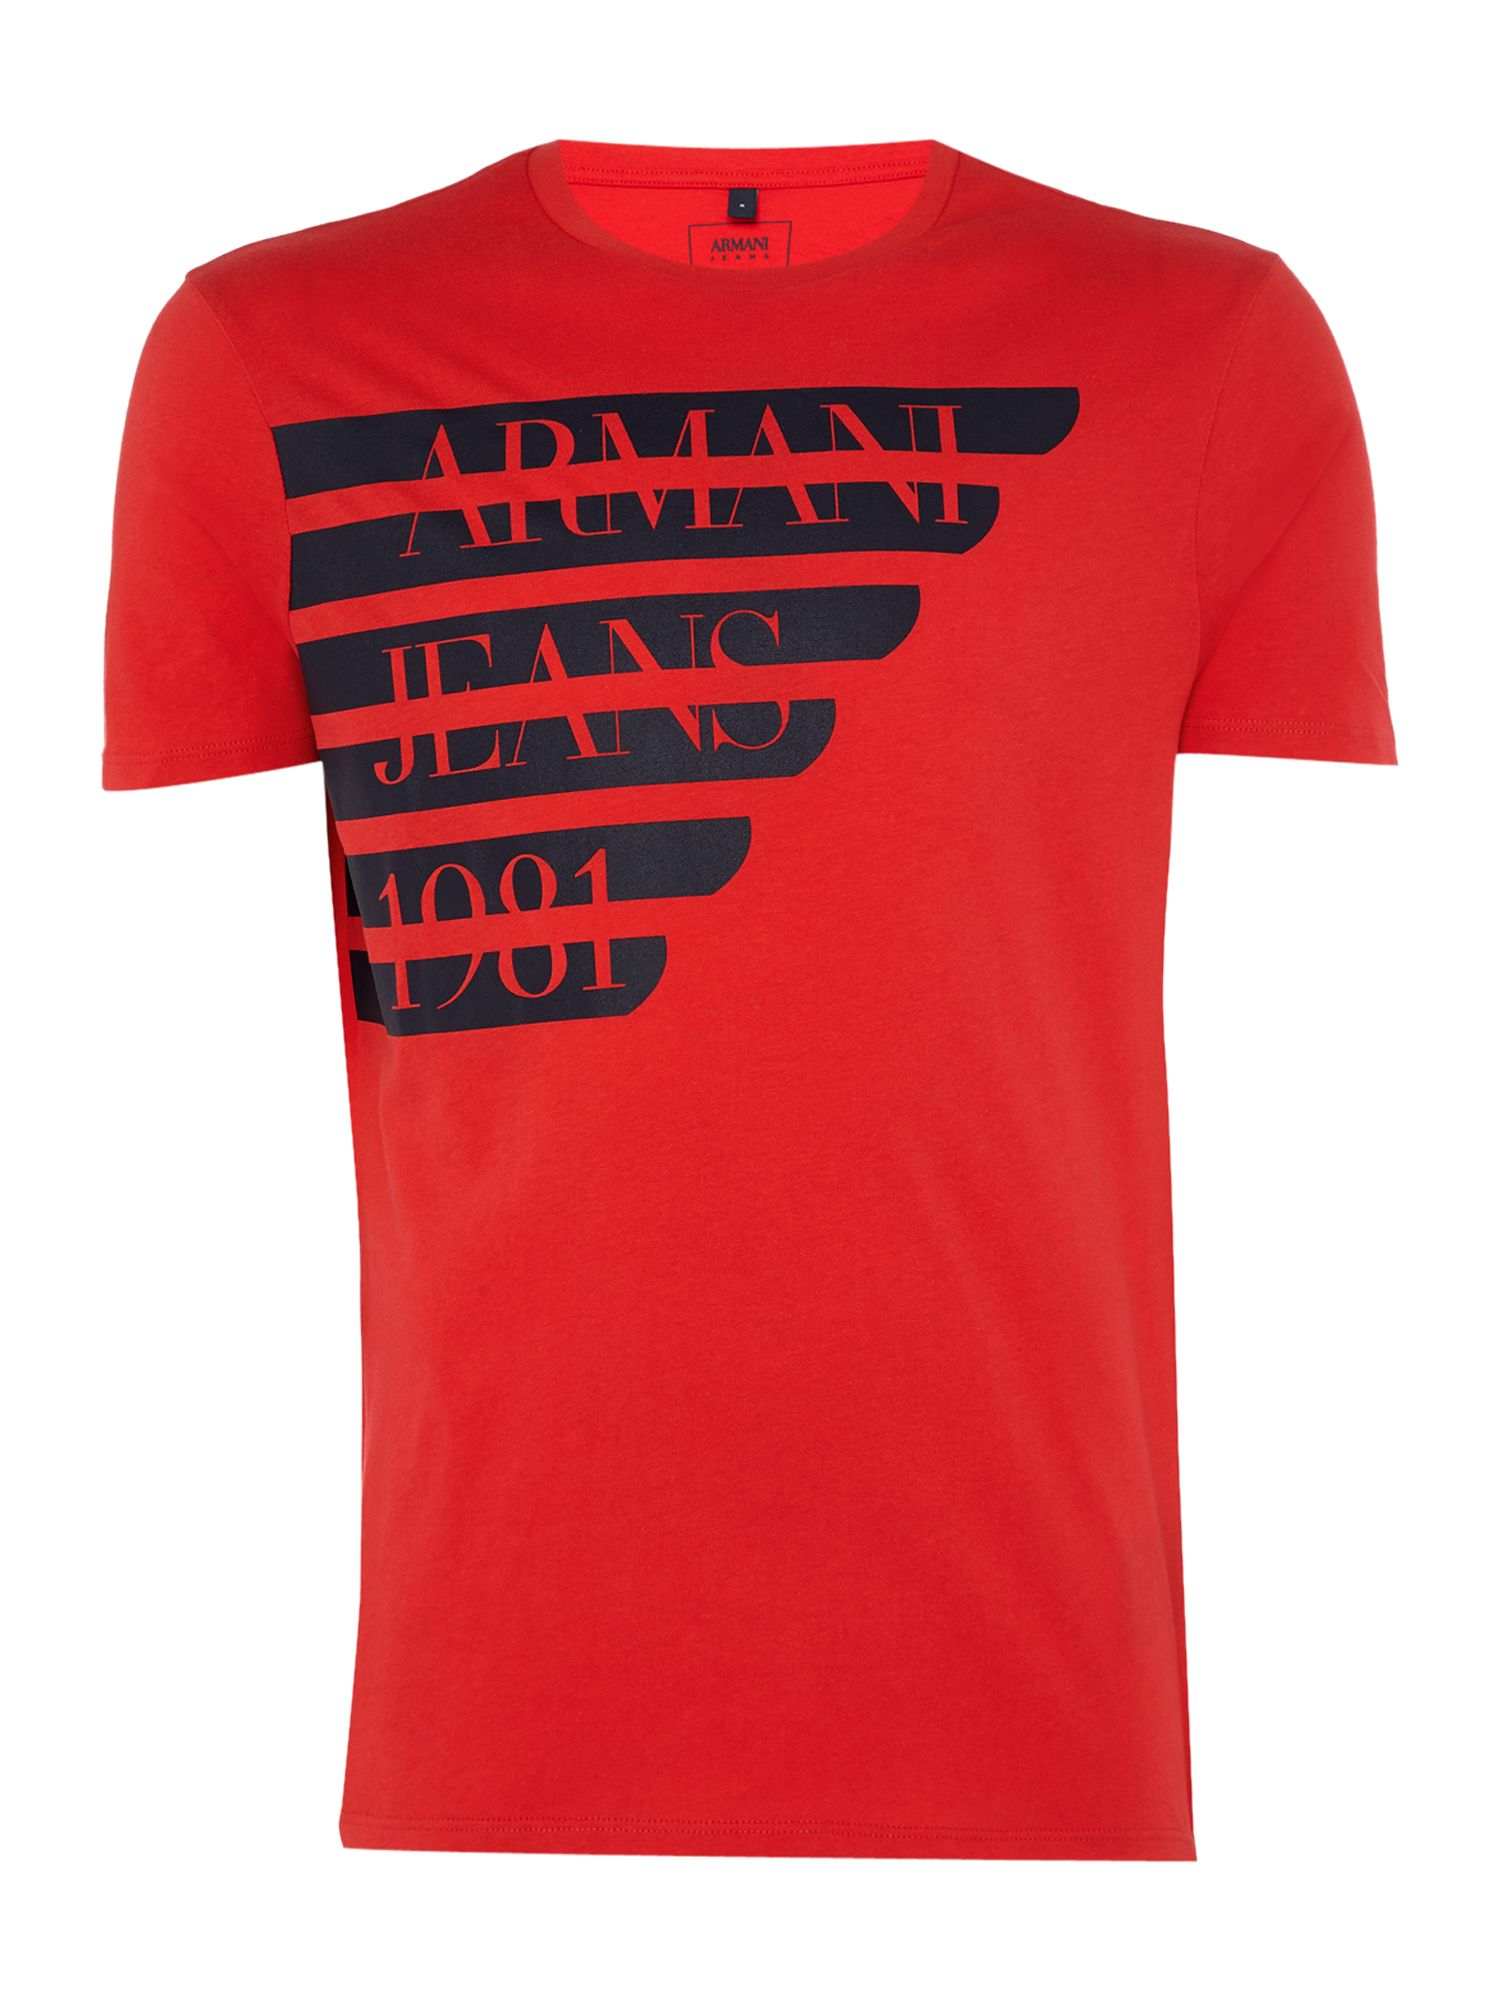 Men's Armani Jeans Regular fit large logo wing t-shirt, Red